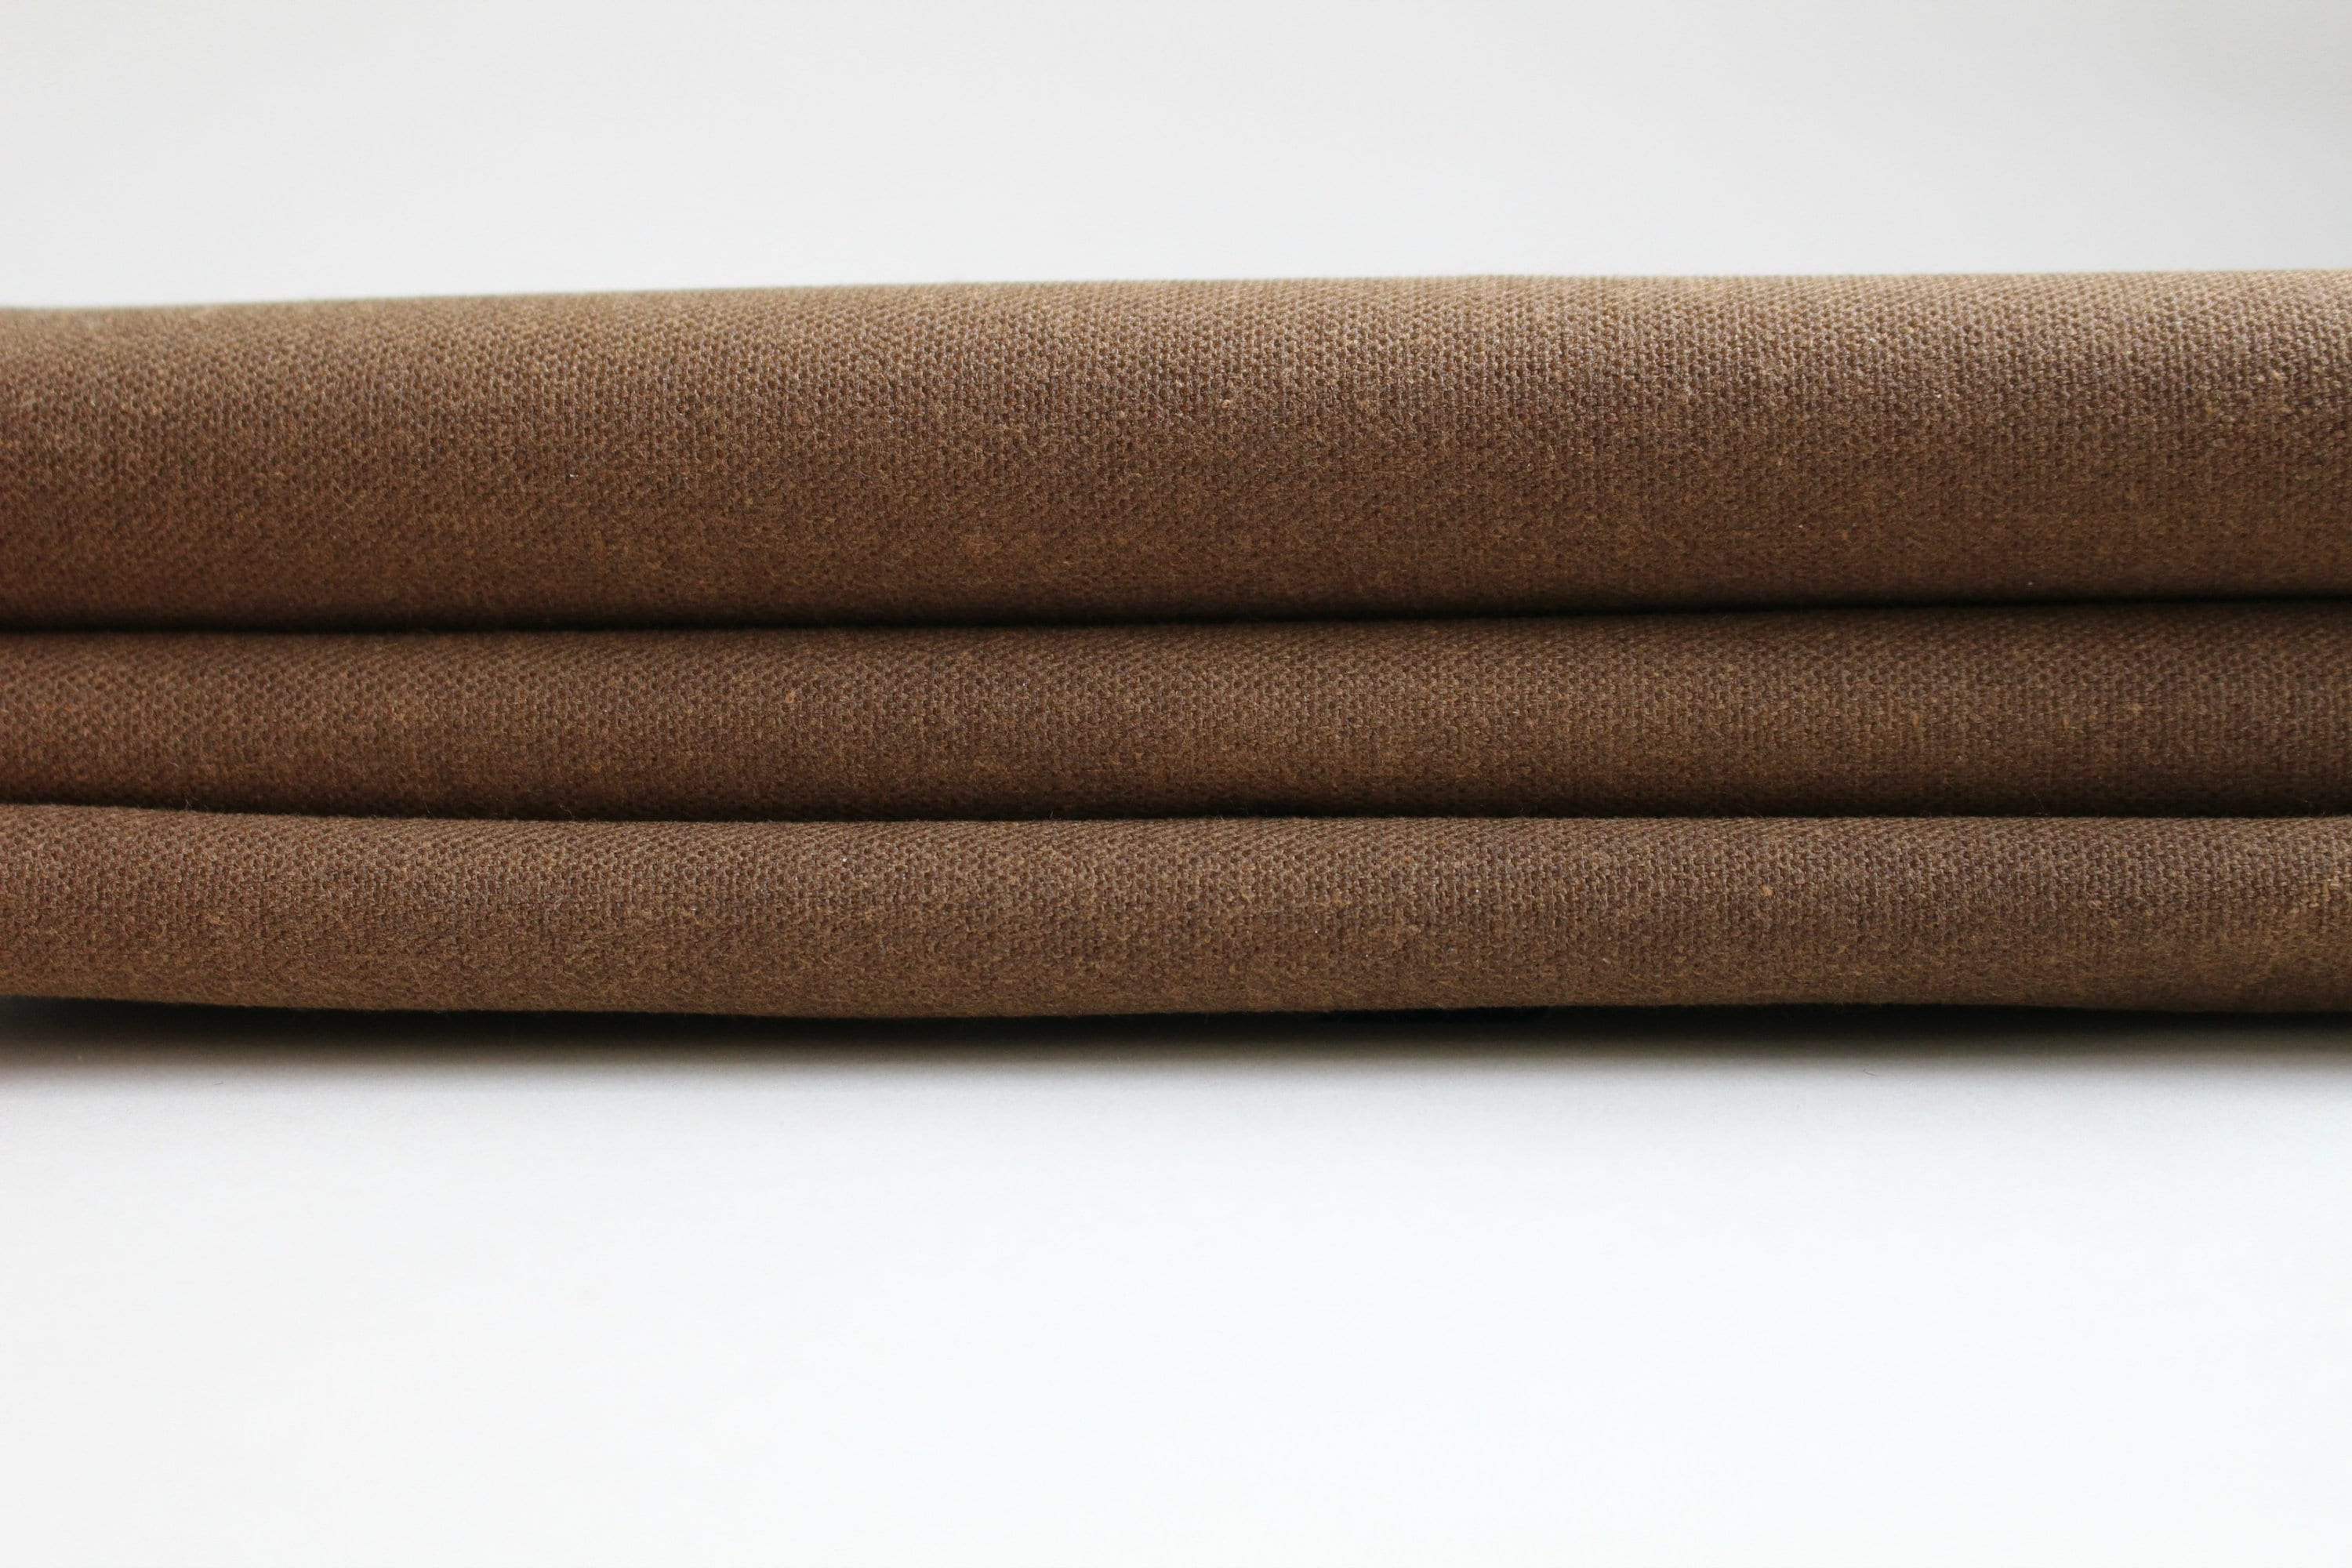 Hand Waxed Cotton Canvas Fabric Spice 10oz By The Yard Etsy